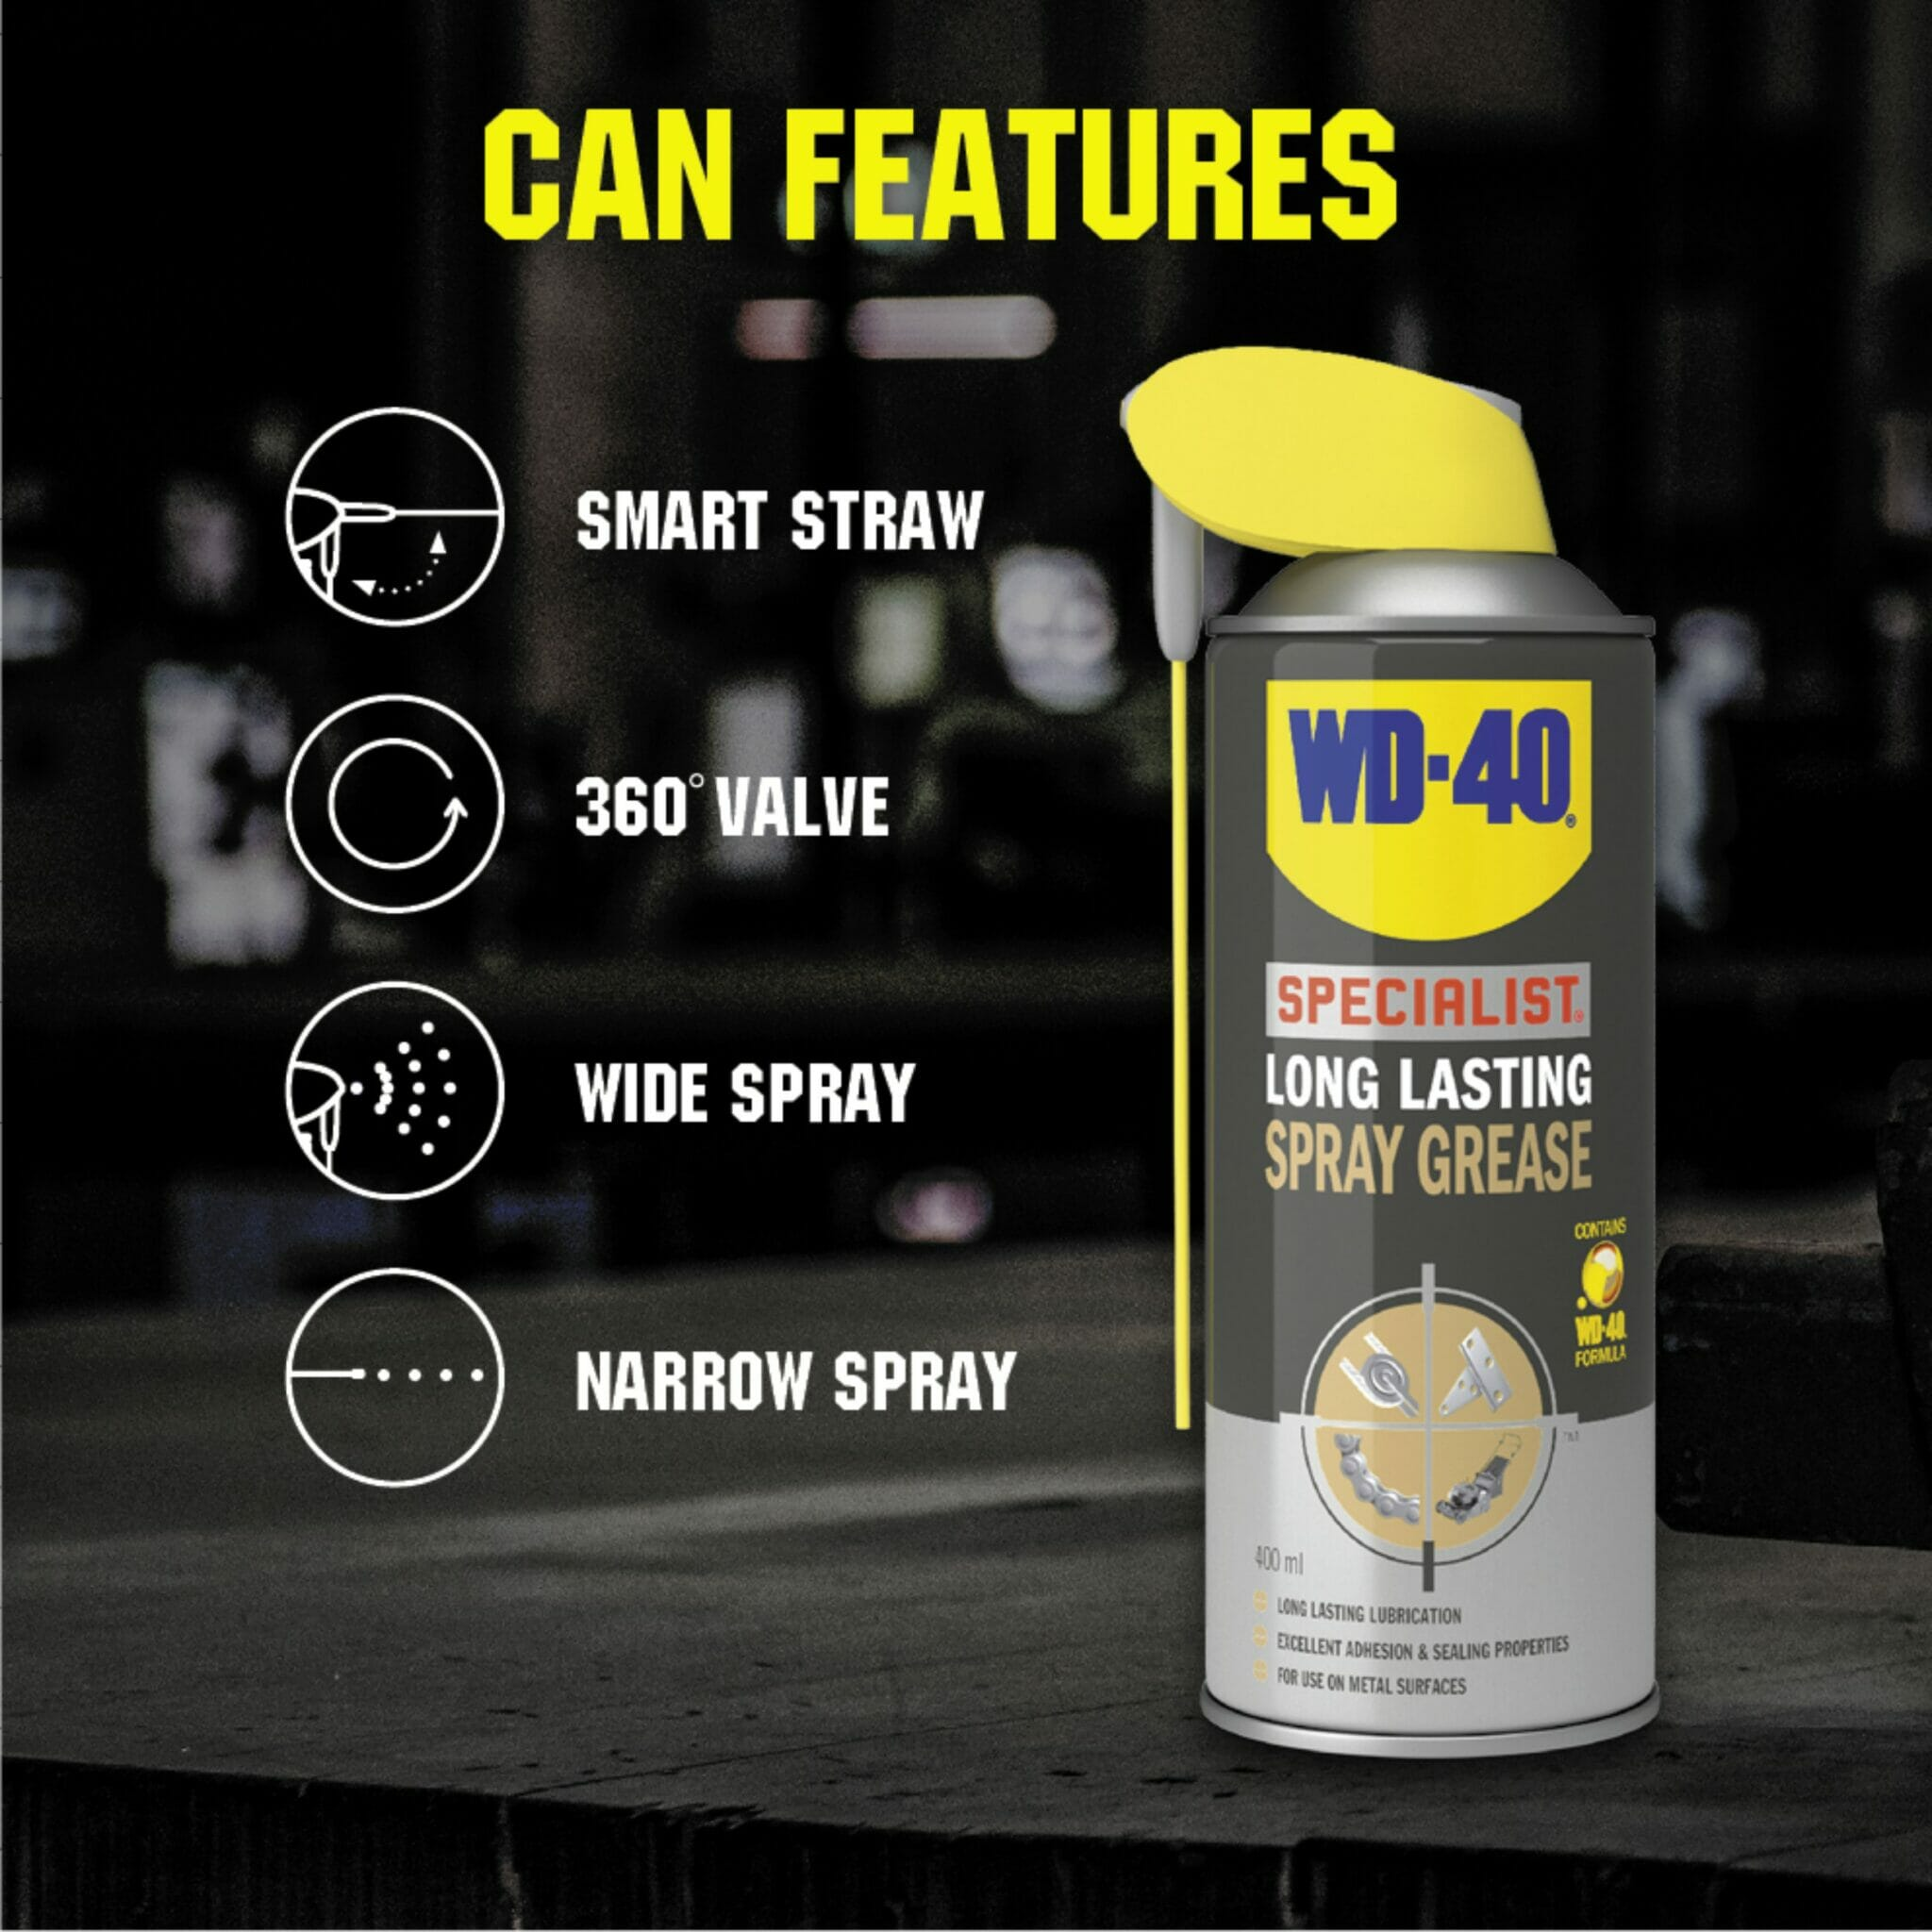 uk wd40 specialist long lasting spray grease 400ml can features lifestyle background